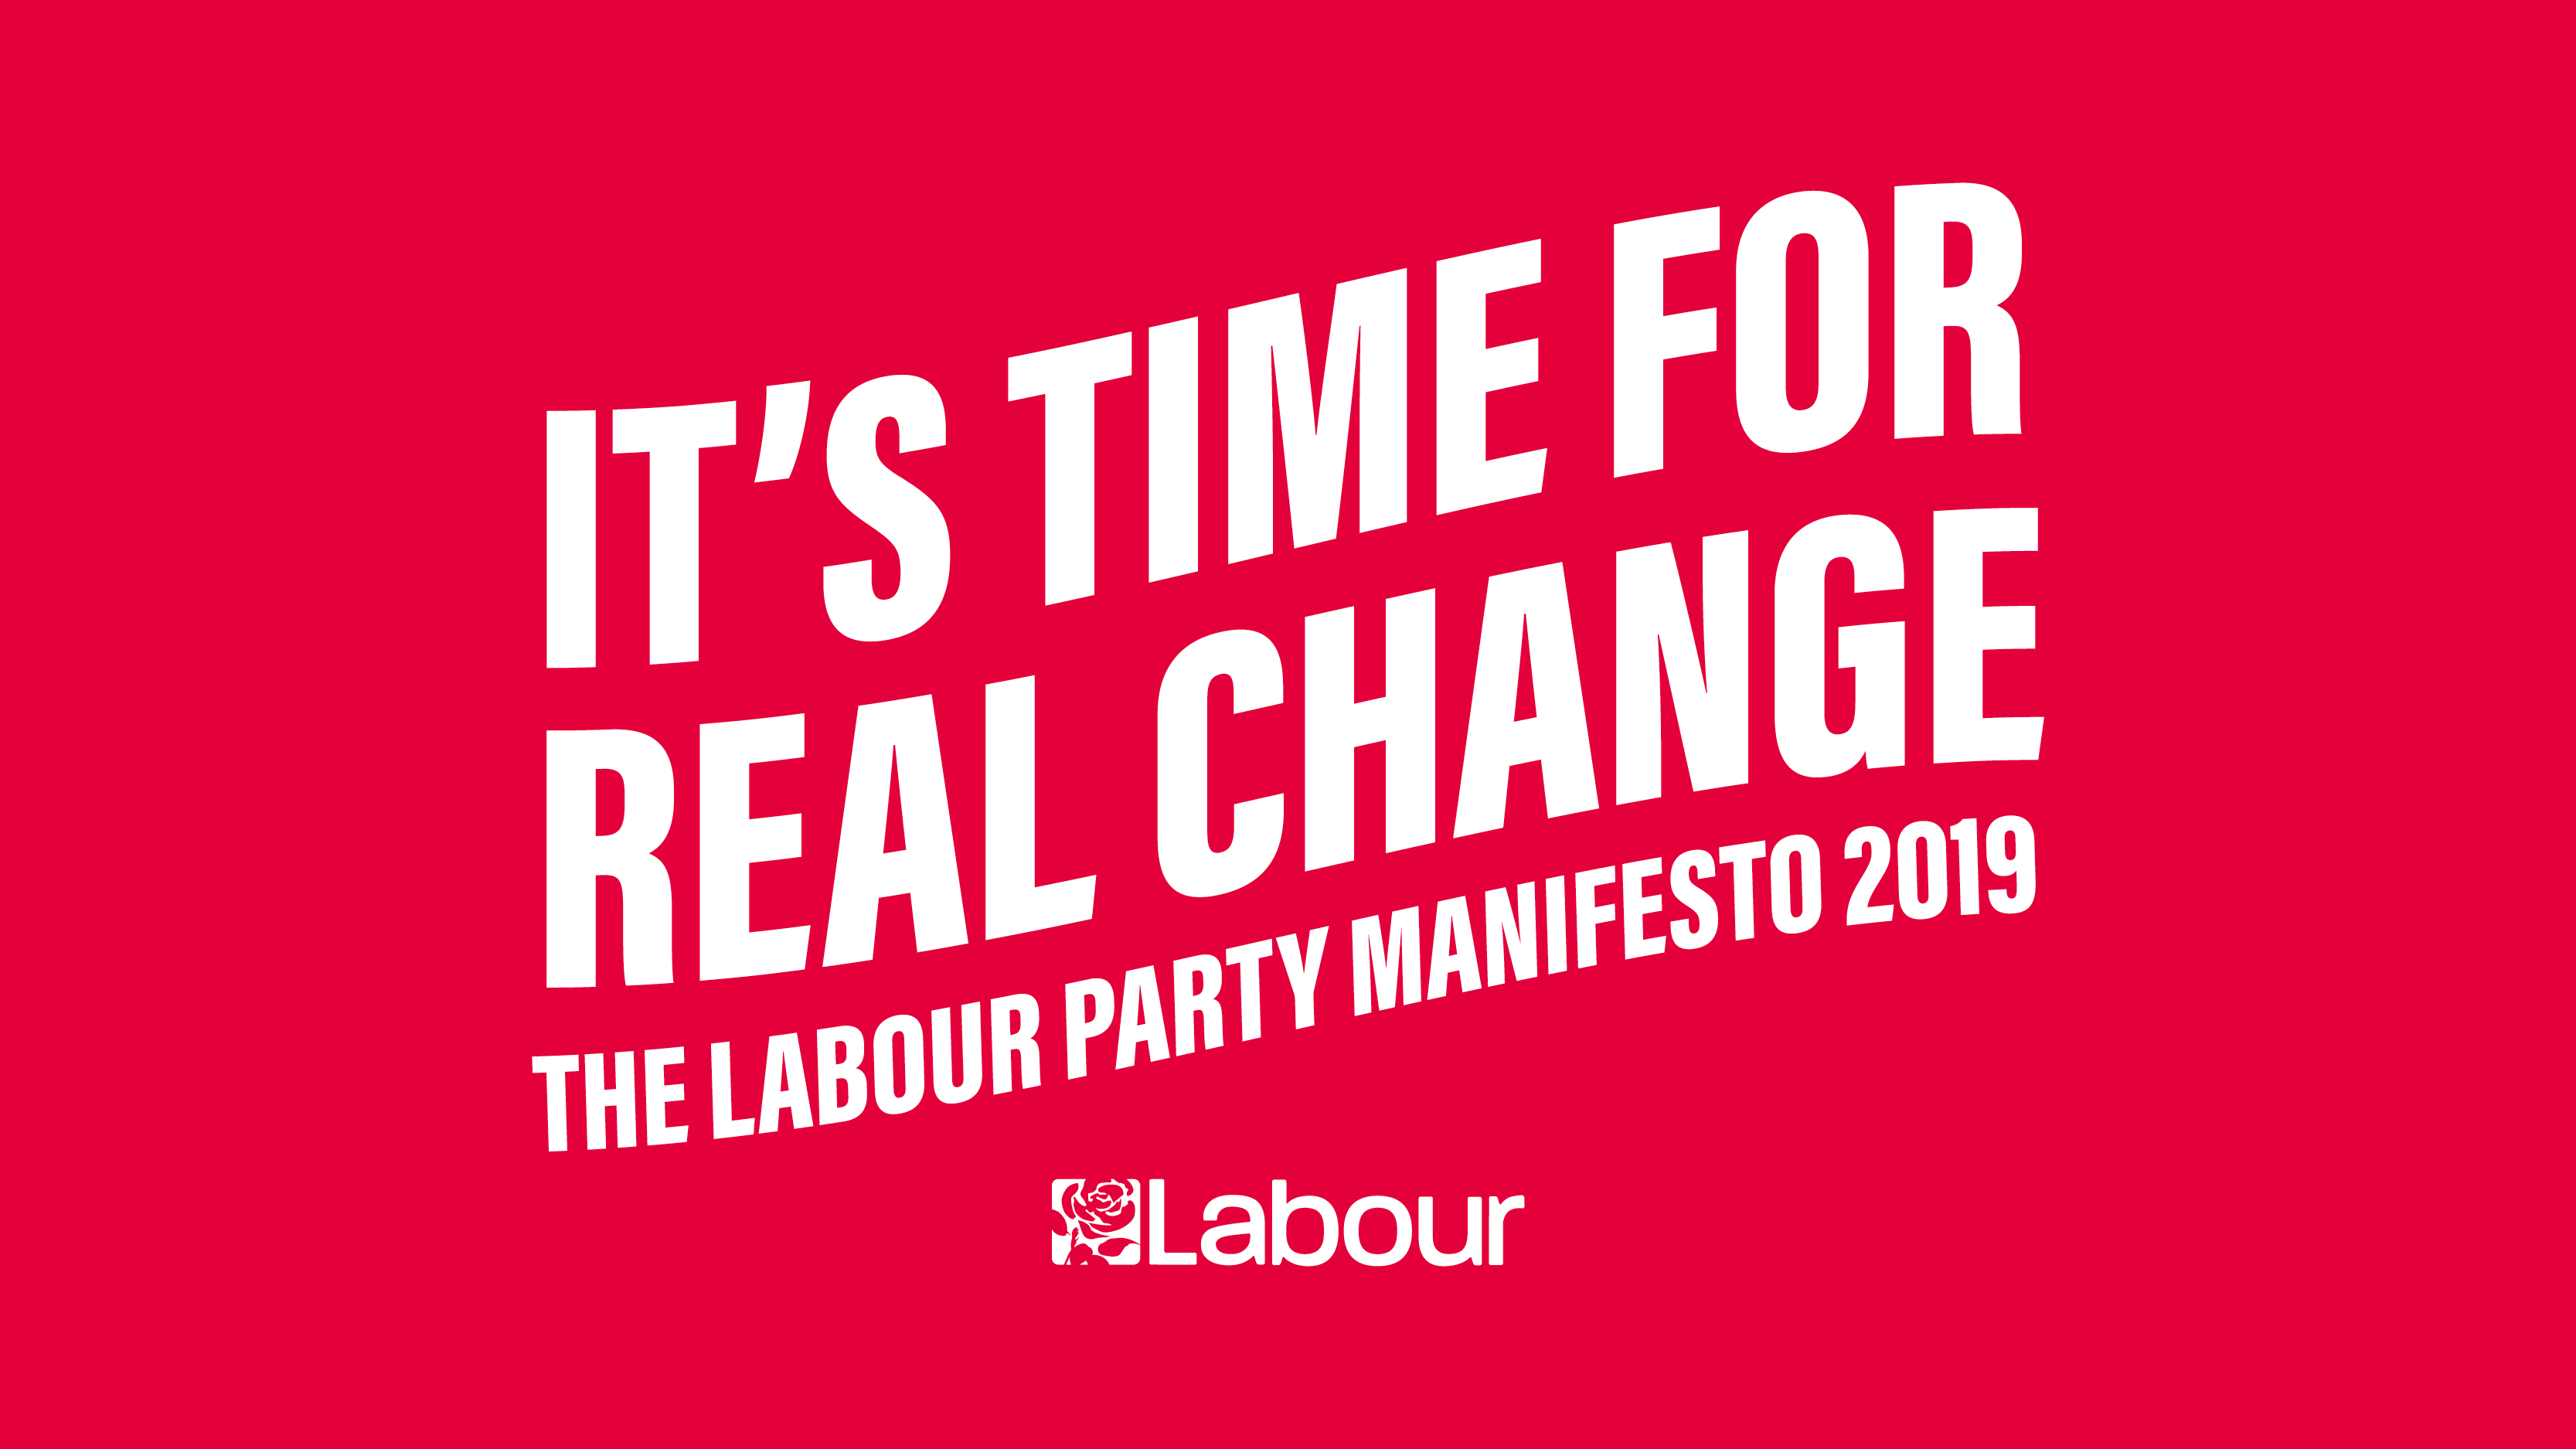 A logo with the words 'It's Time for Real Change' and the Labour logo